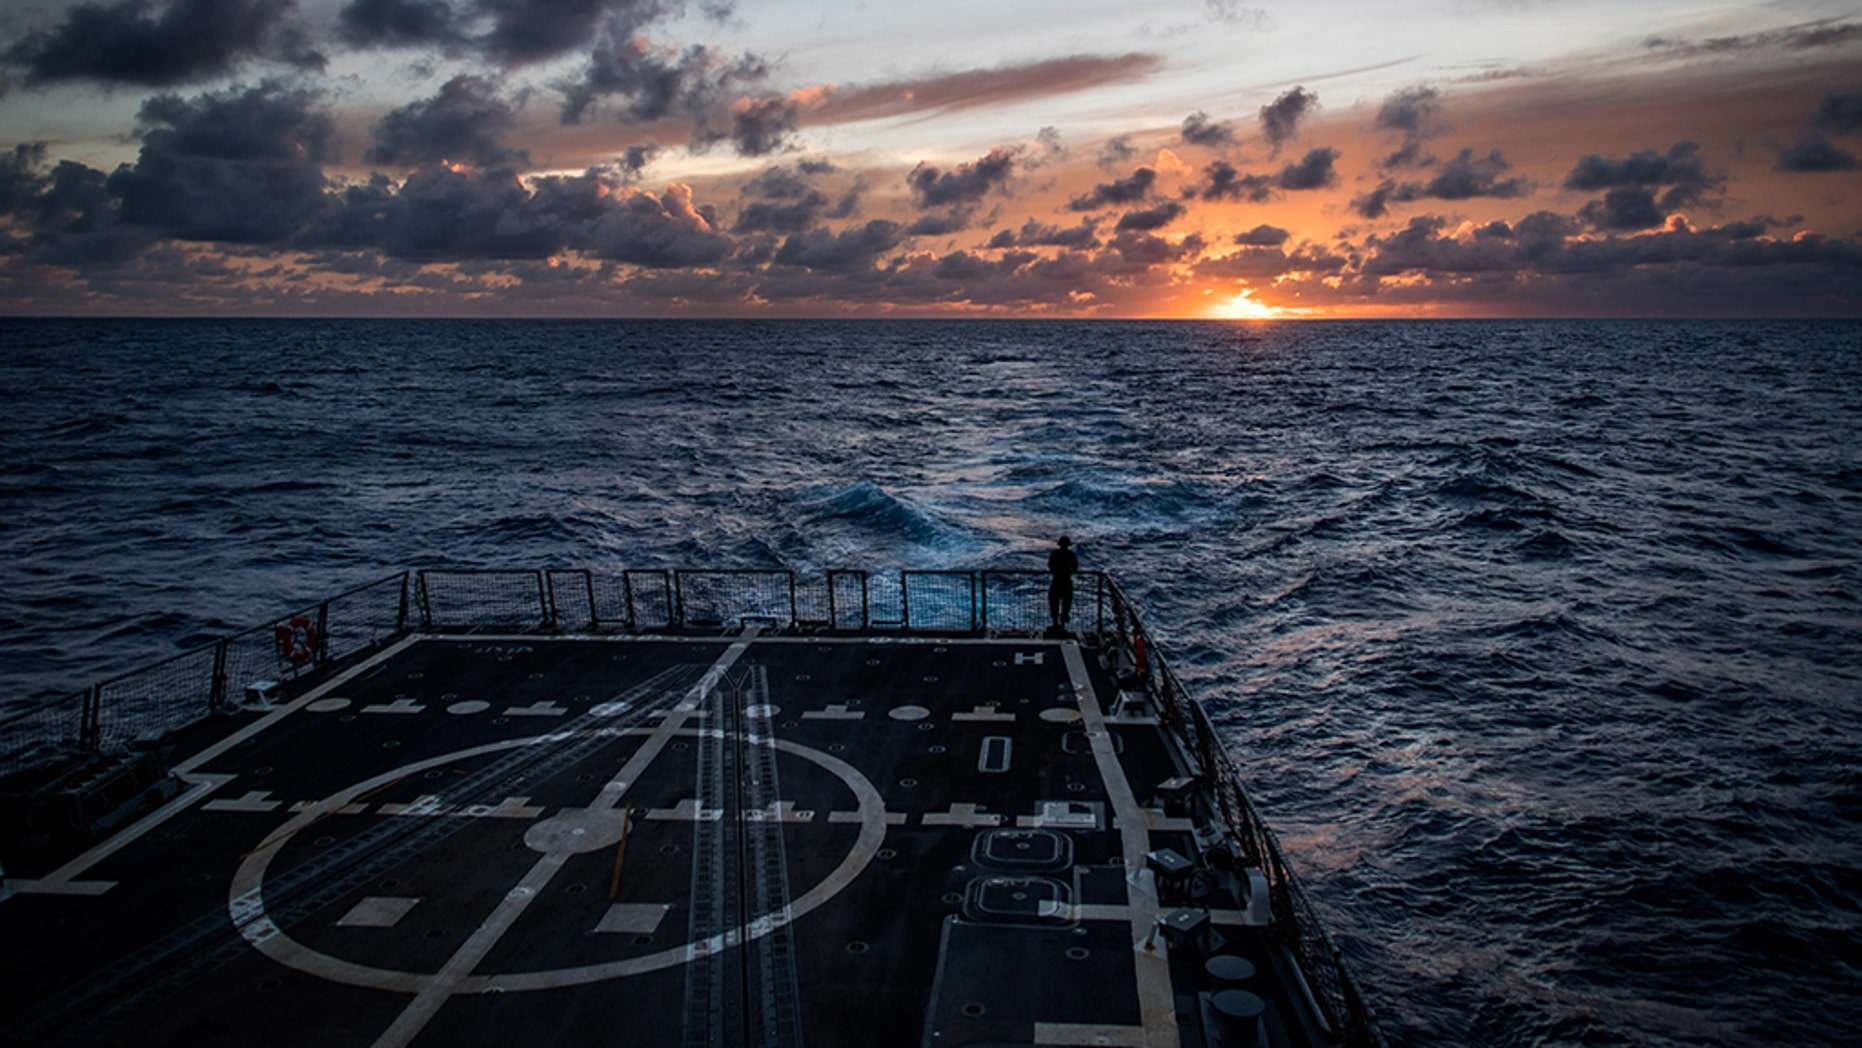 The guided-missile destroyer USS Dewey (DDG 105) transits the Pacific Ocean while participating in the 2018 Rim of the Pacific (RIMPAC) exercise.